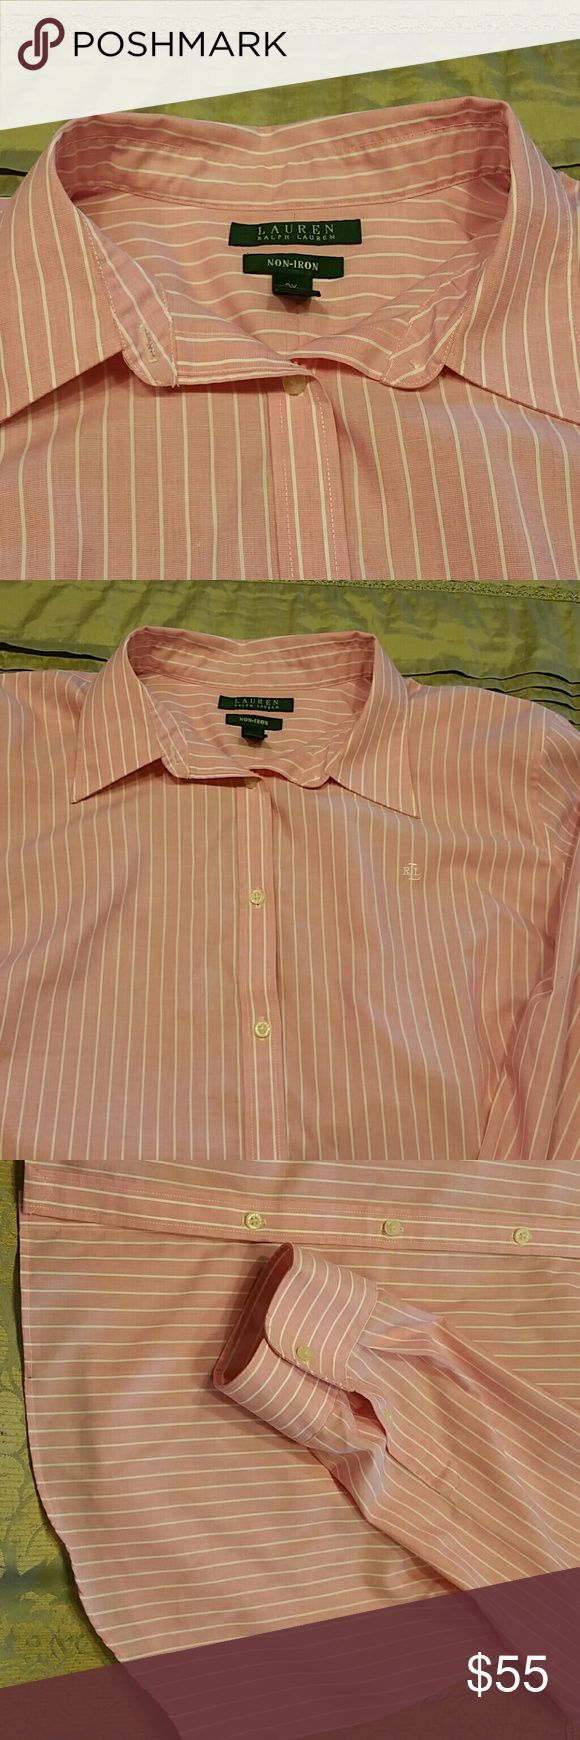 Ralph Lauren Womens Oxford Pink Pin-Striped, Non-Iron, Cut to be worn tucked or out.  Sleeve from shoulder to underneath arm is approx 10.75 inches. It's in excellent condition, only worn once or twice. Ralph Lauren Tops Button Down Shirts